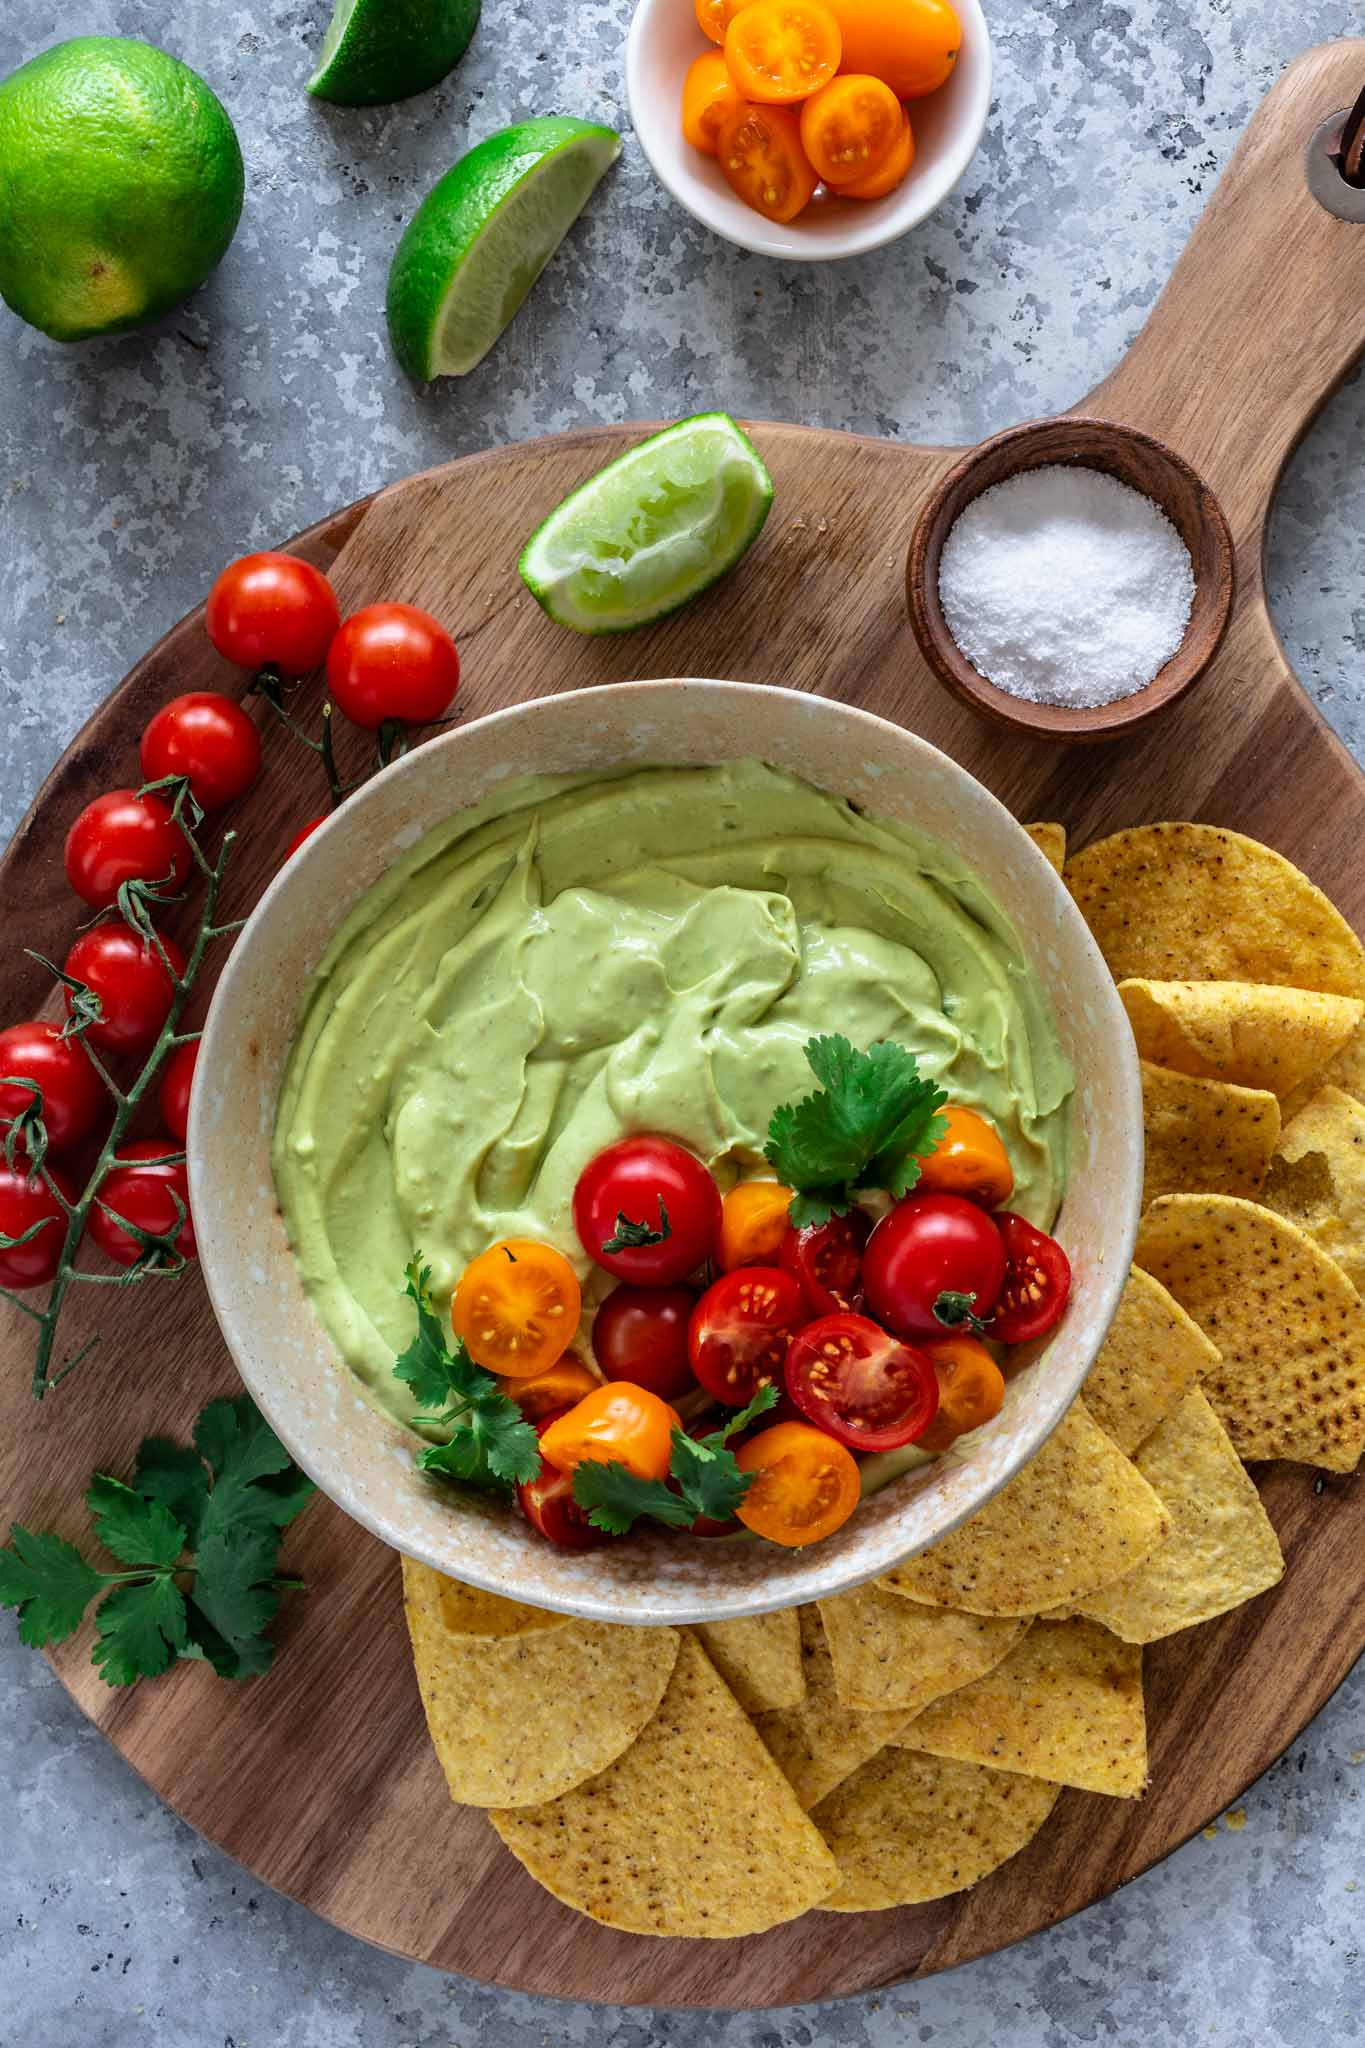 Whipped avocado dip topped with tomatoes and served with tortillas.